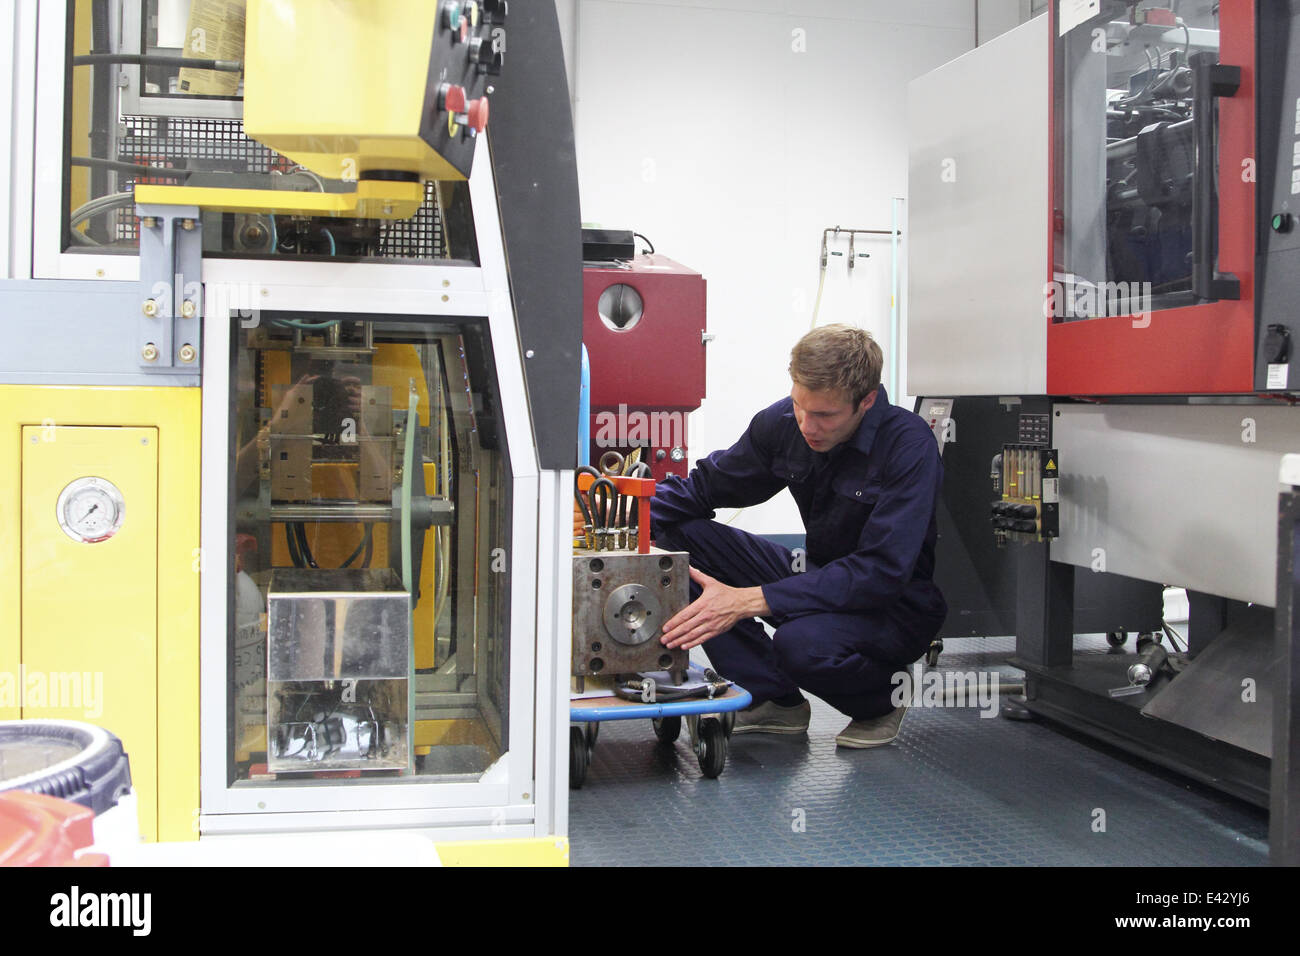 Male engineer repairing manufacturing machine in factory - Stock Image